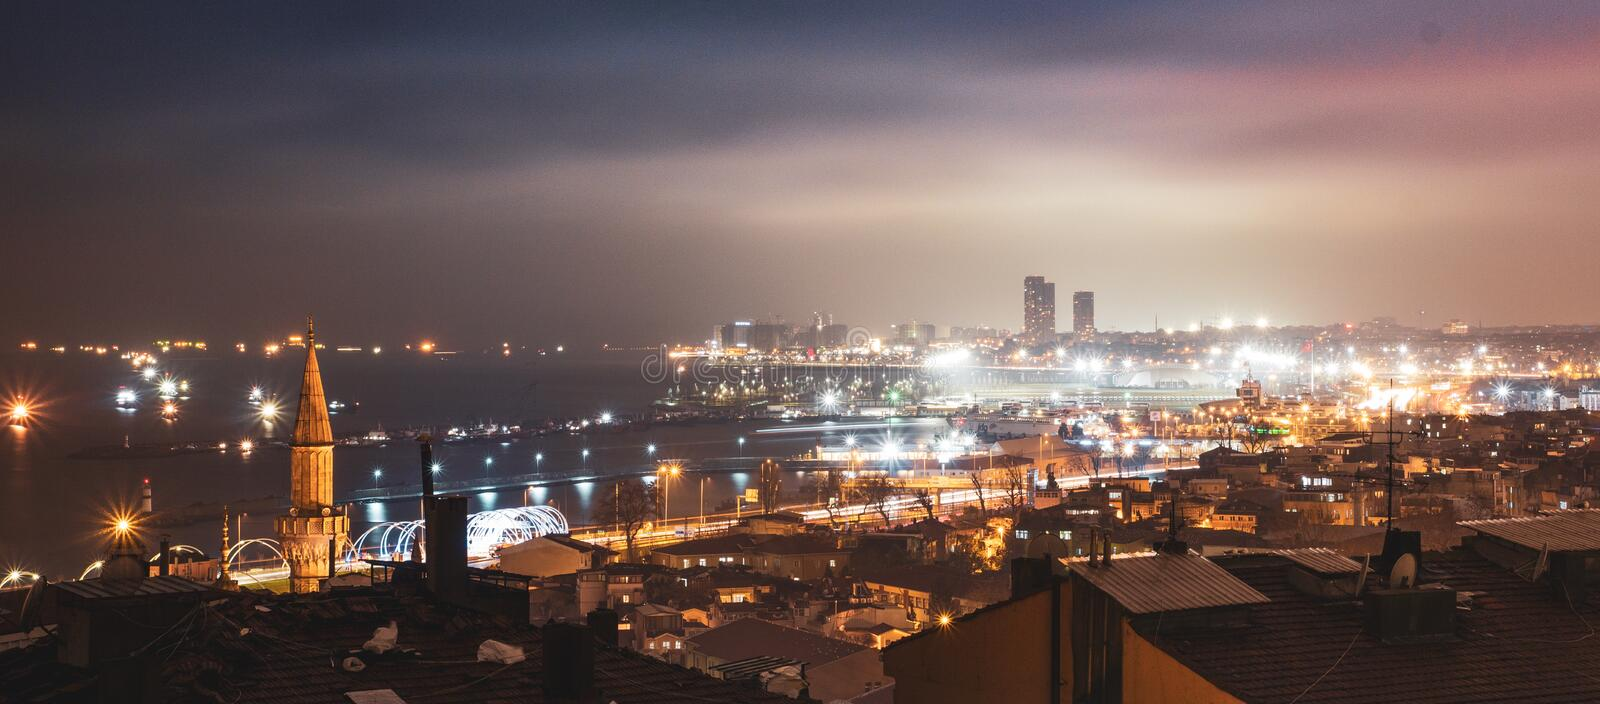 The Beautiful City of Istanbul in the Darkness of the Night royalty free stock photo